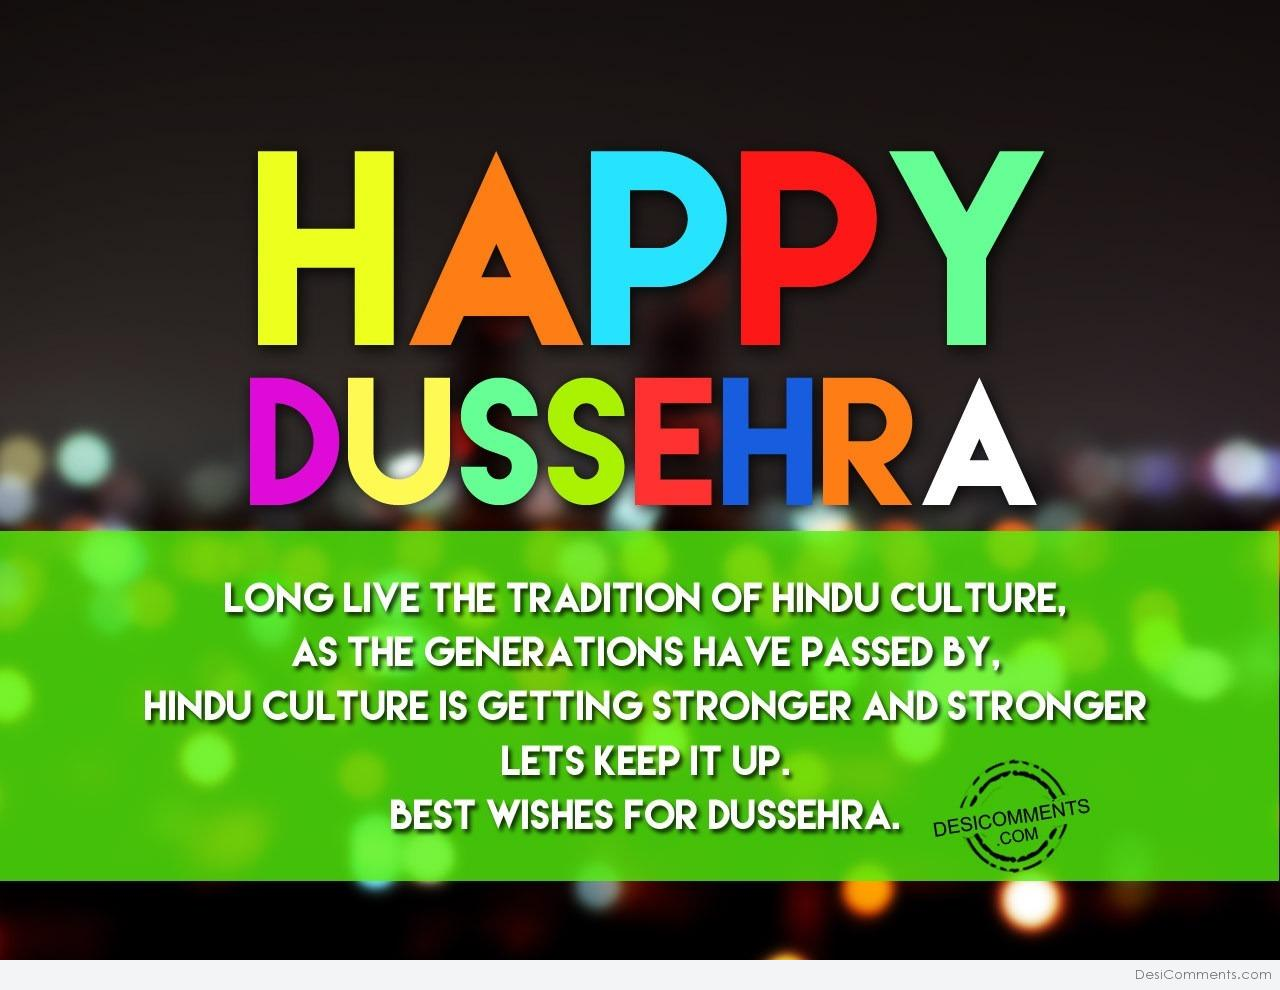 Dussehra pictures images graphics picture long live the traditon of hindu culture happy dussehra m4hsunfo